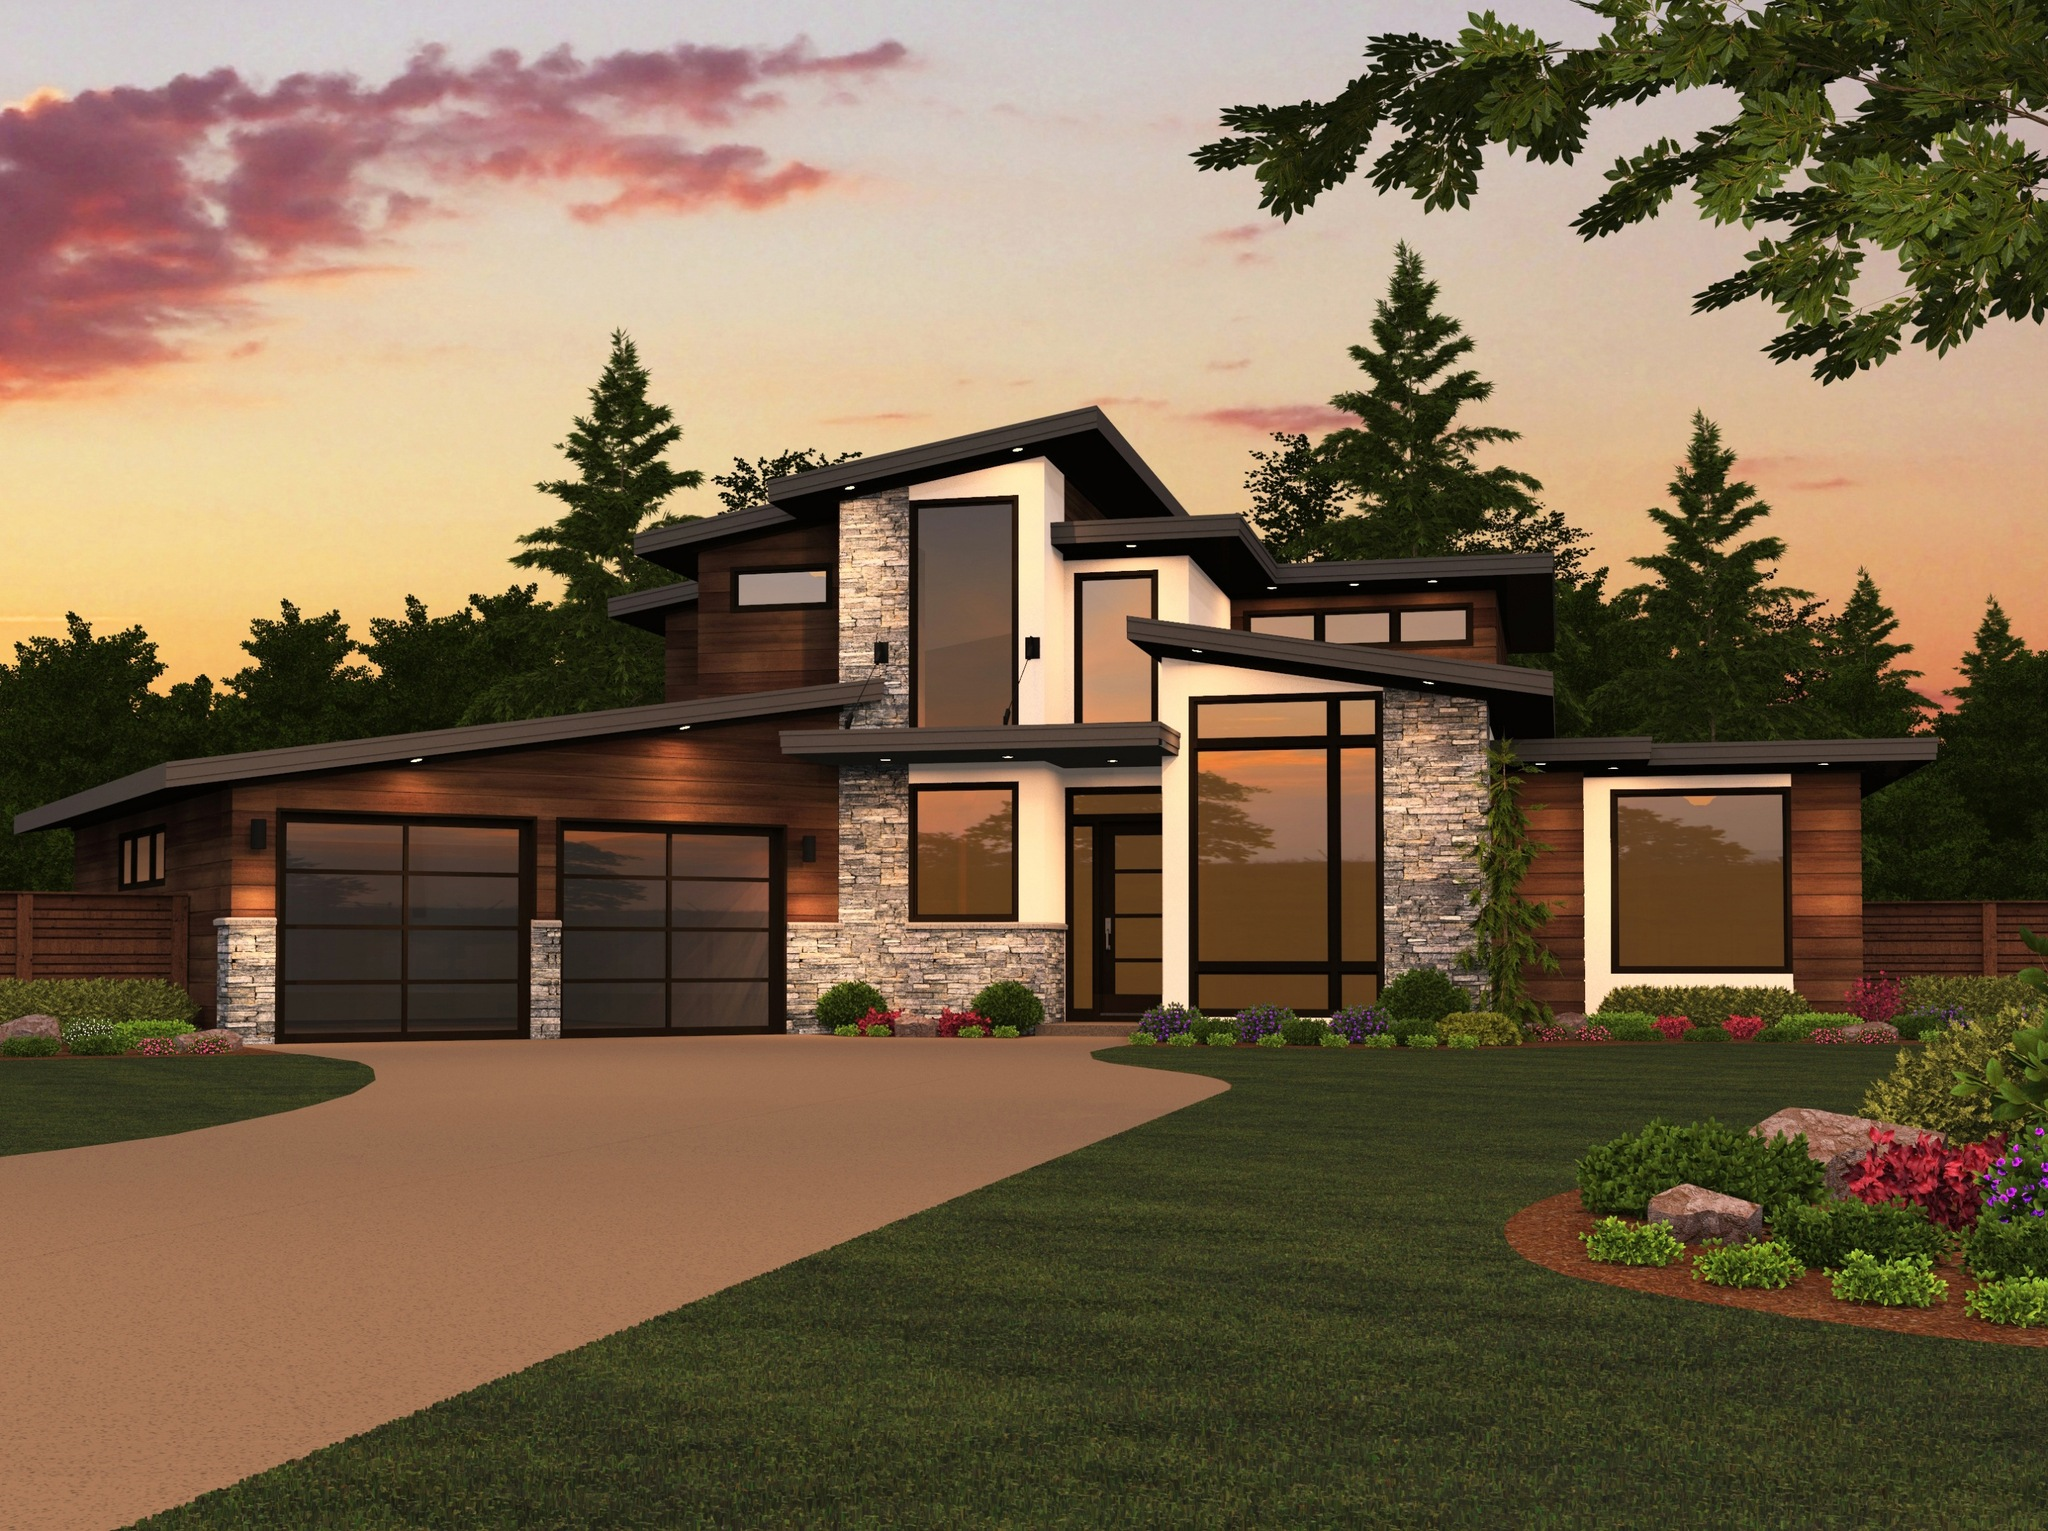 2 Story Modern House Design Plans With